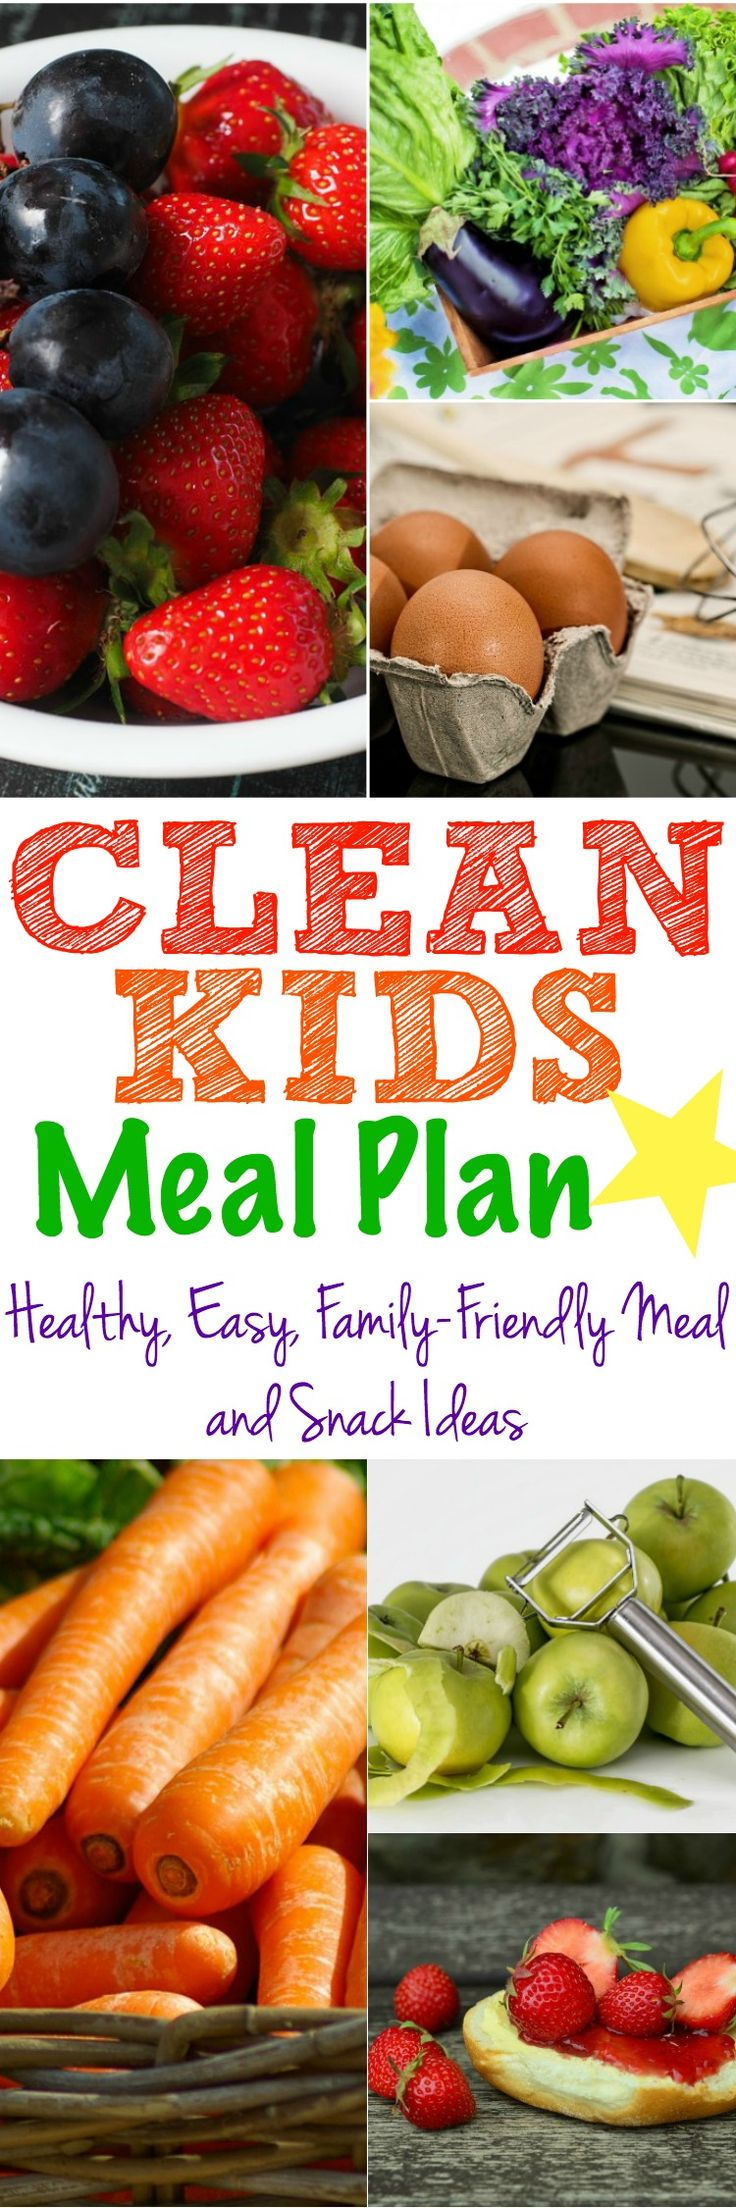 This Clean Kids Meal Plan is full of over a week's worth of healthy breakfasts, lunches, dinners, and snack ideas that the whole family will love!